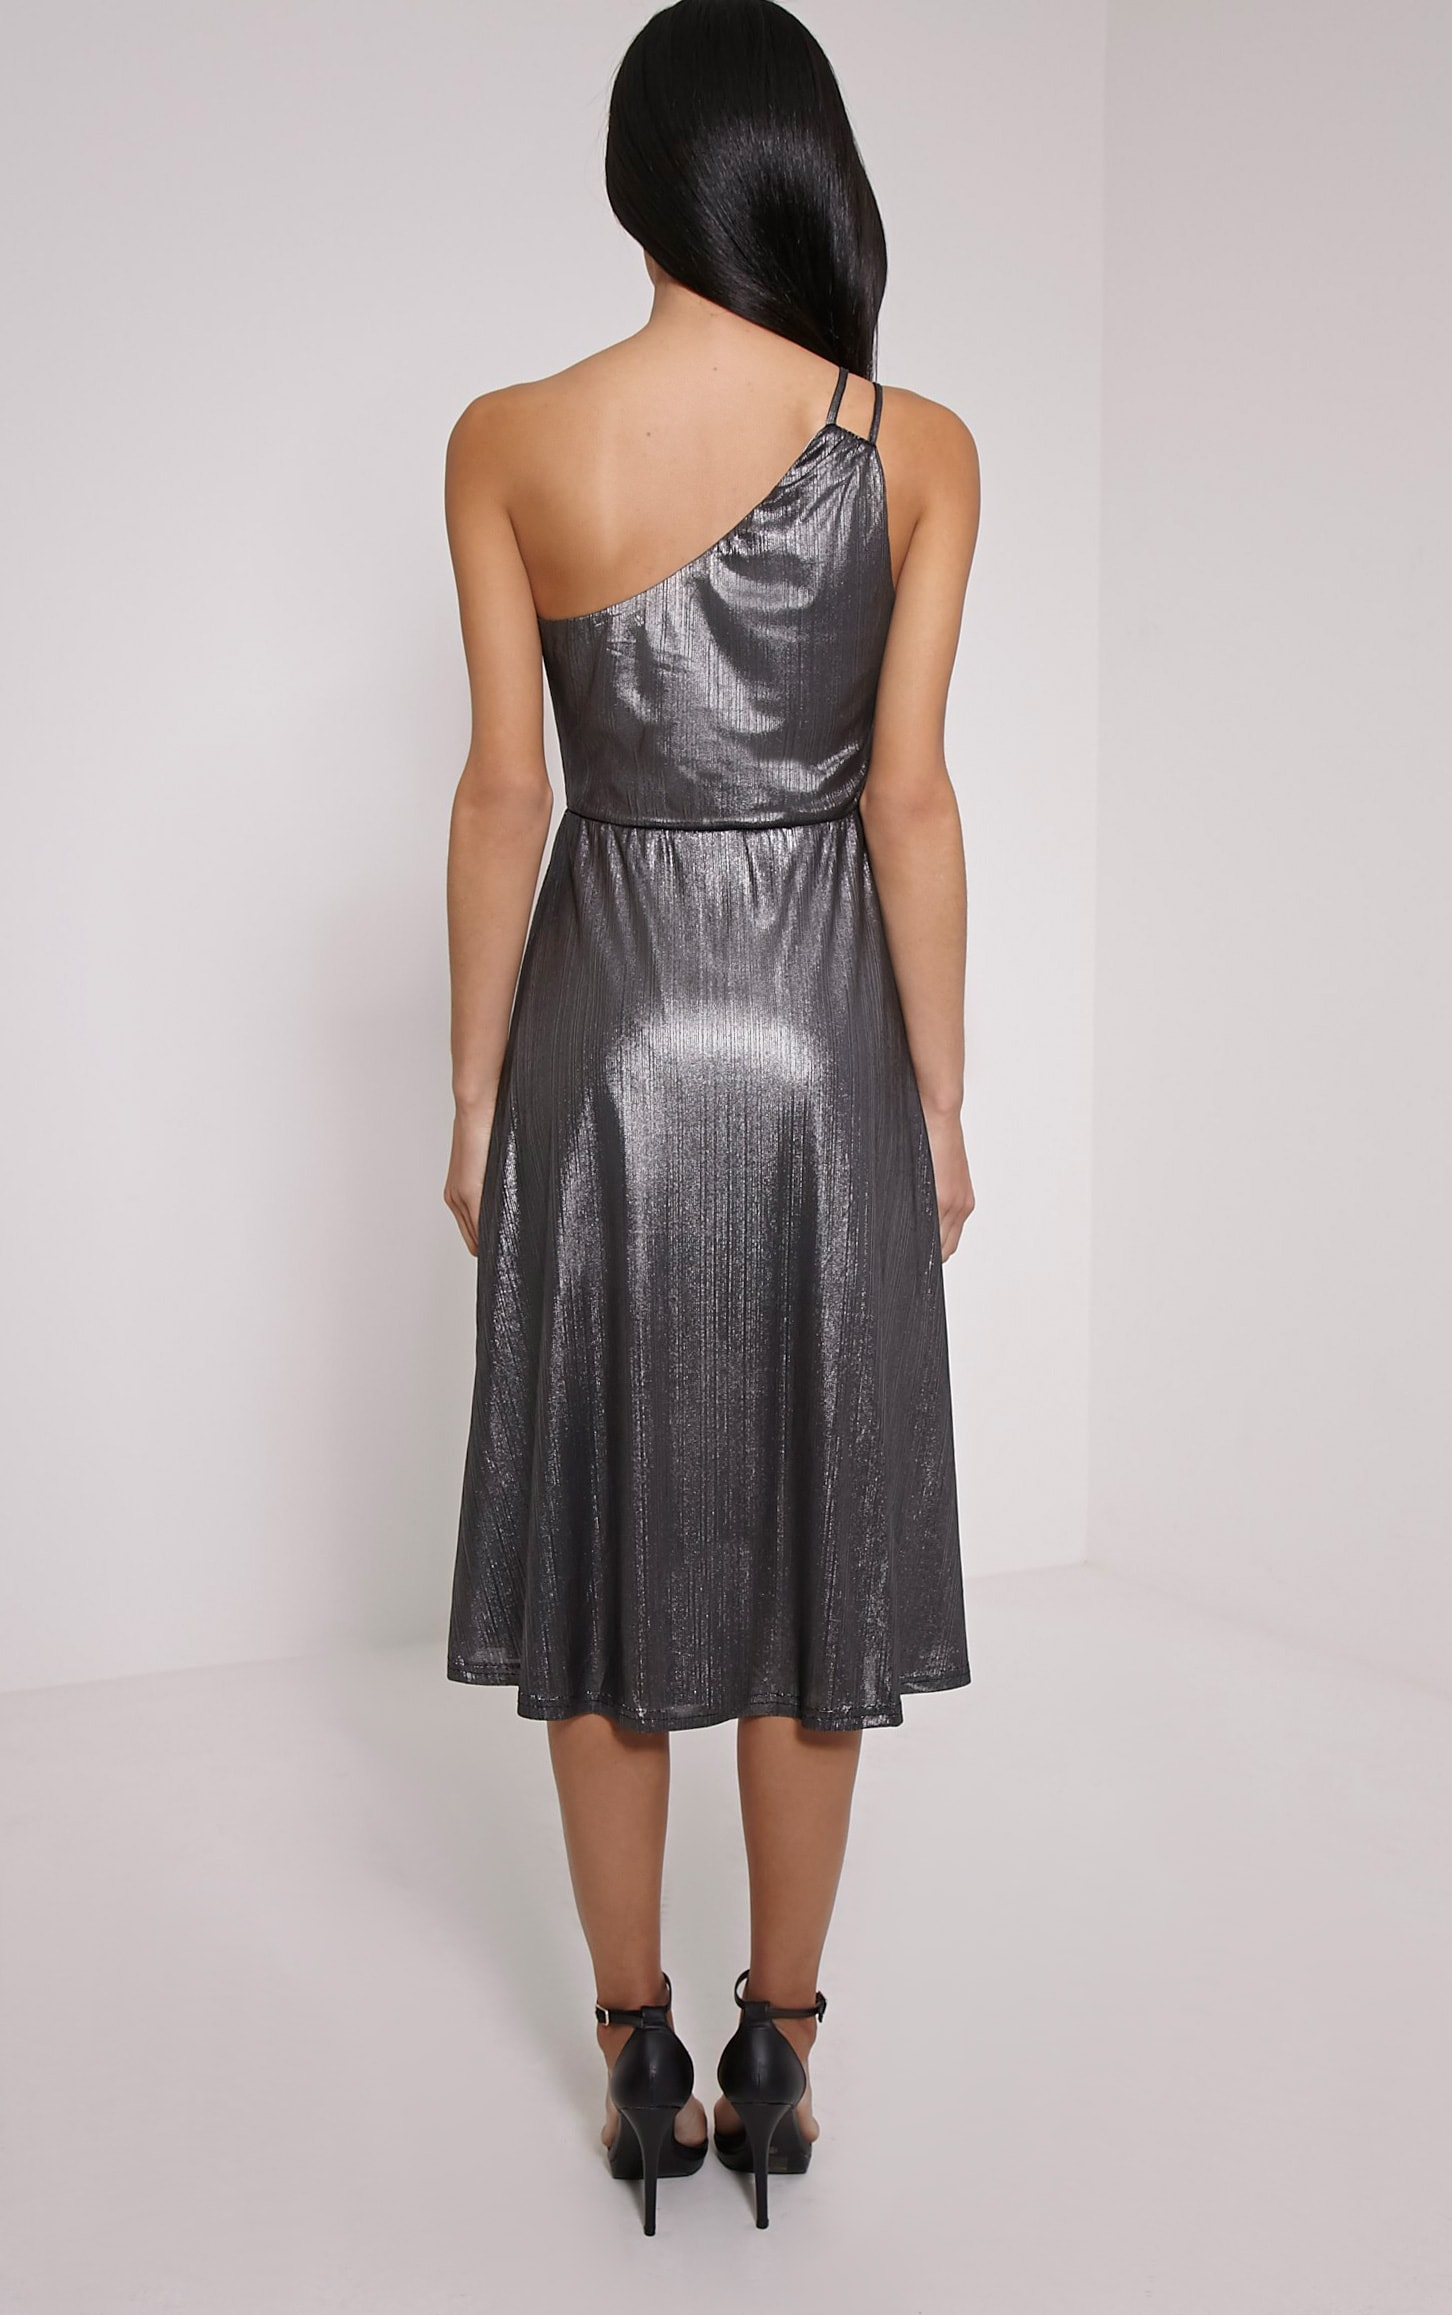 Stephy Silver Metallic Skater Dress 2